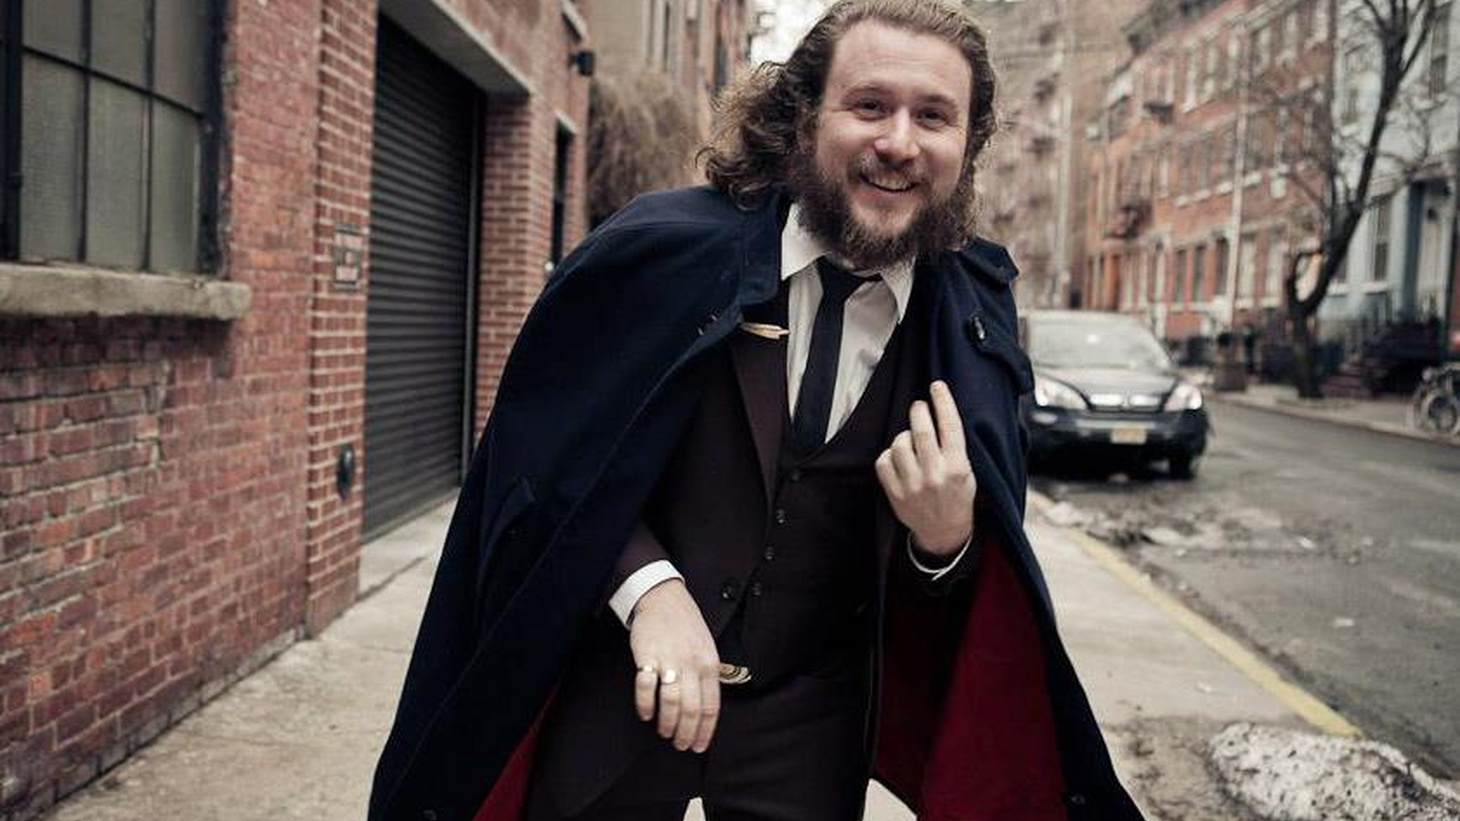 My Morning Jacket front-man Jim James is finally releasing his first solo album, which he wrote, recorded and engineered by himself at home in Louisville.